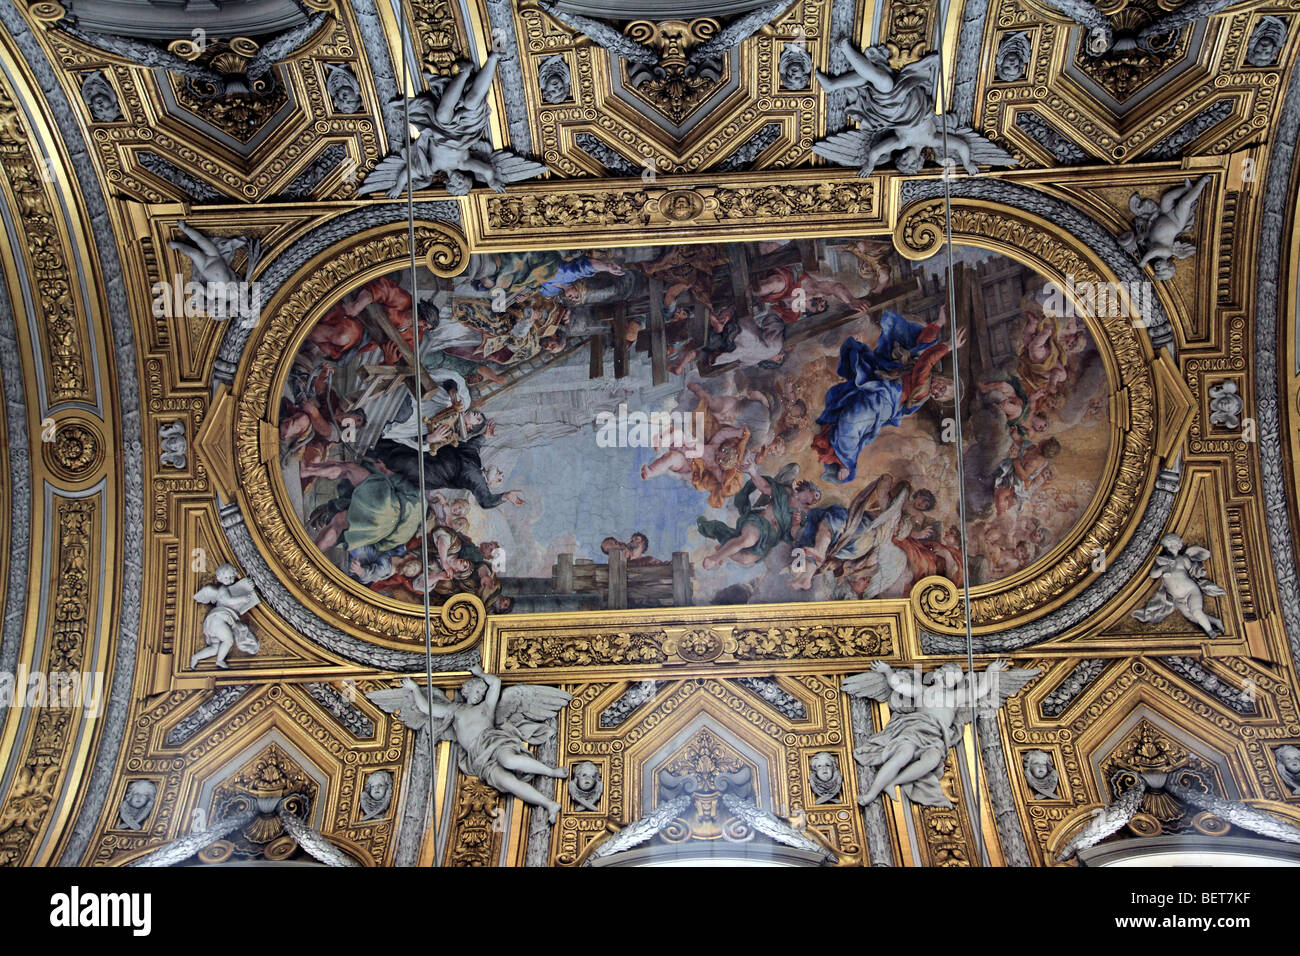 Ornate ceiling of Chiesa Nuova in Rome Italy - Stock Image